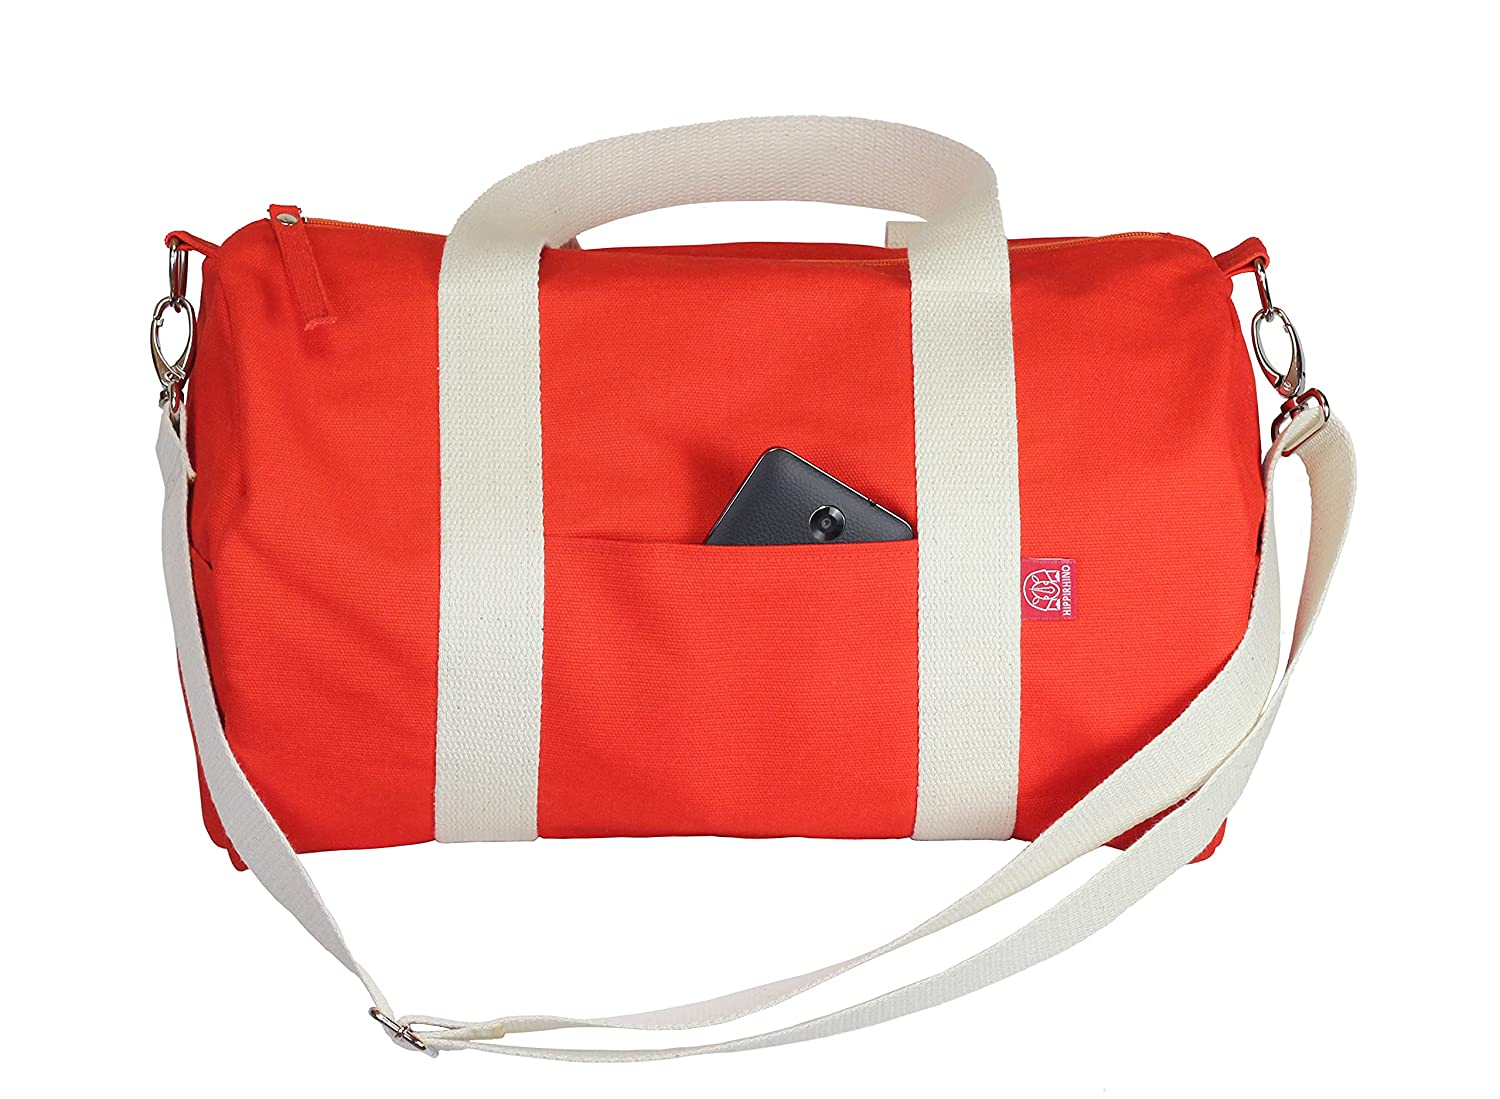 Orange Duffel Bag Full Lined Long St Cheap sale Washable and Adjustable Challenge the lowest price of Japan ☆